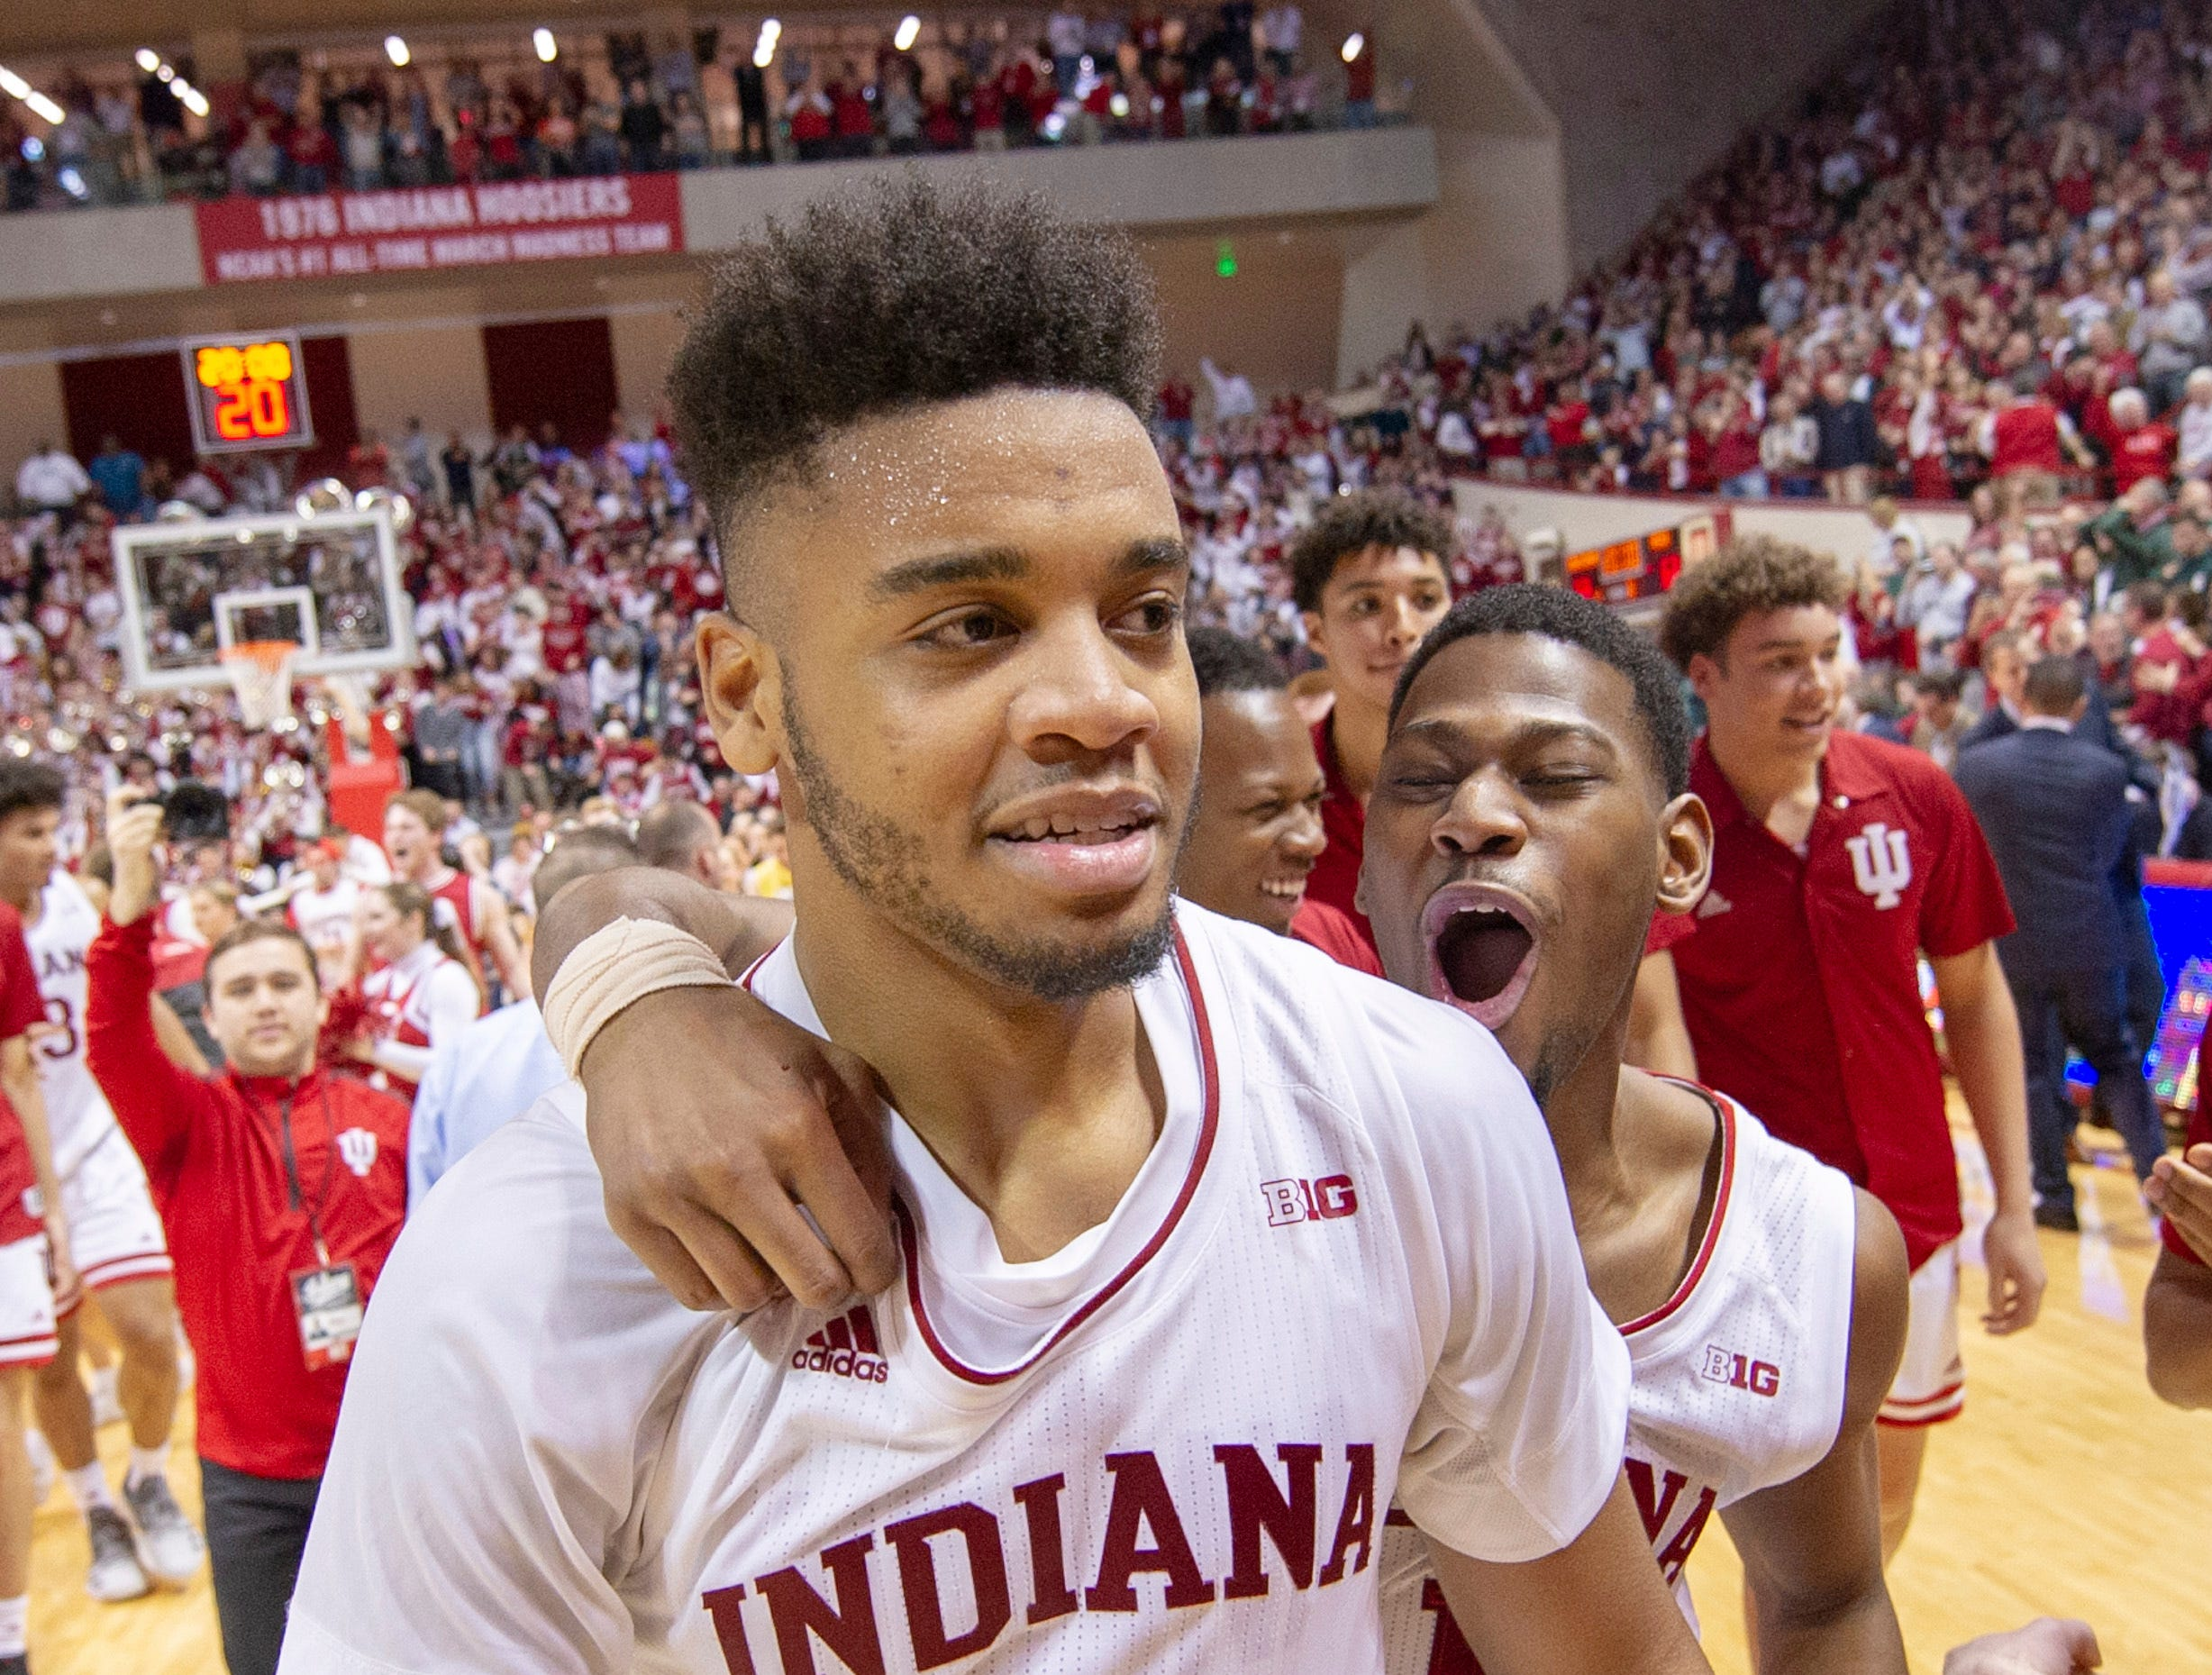 10. Indiana (15-14, 6-12) – It's probably all too little, too late for the Hoosiers, who beat Wisconsin and Michigan State this week for their first winning streak in a couple months. The metrics might say the Hoosiers are on the bubble, but with Illinois and Rutgers left, only a run to the Big Ten tournament championship game will likely get Archie Miller's team into the discussion for an at-large bid. Last week: 13.